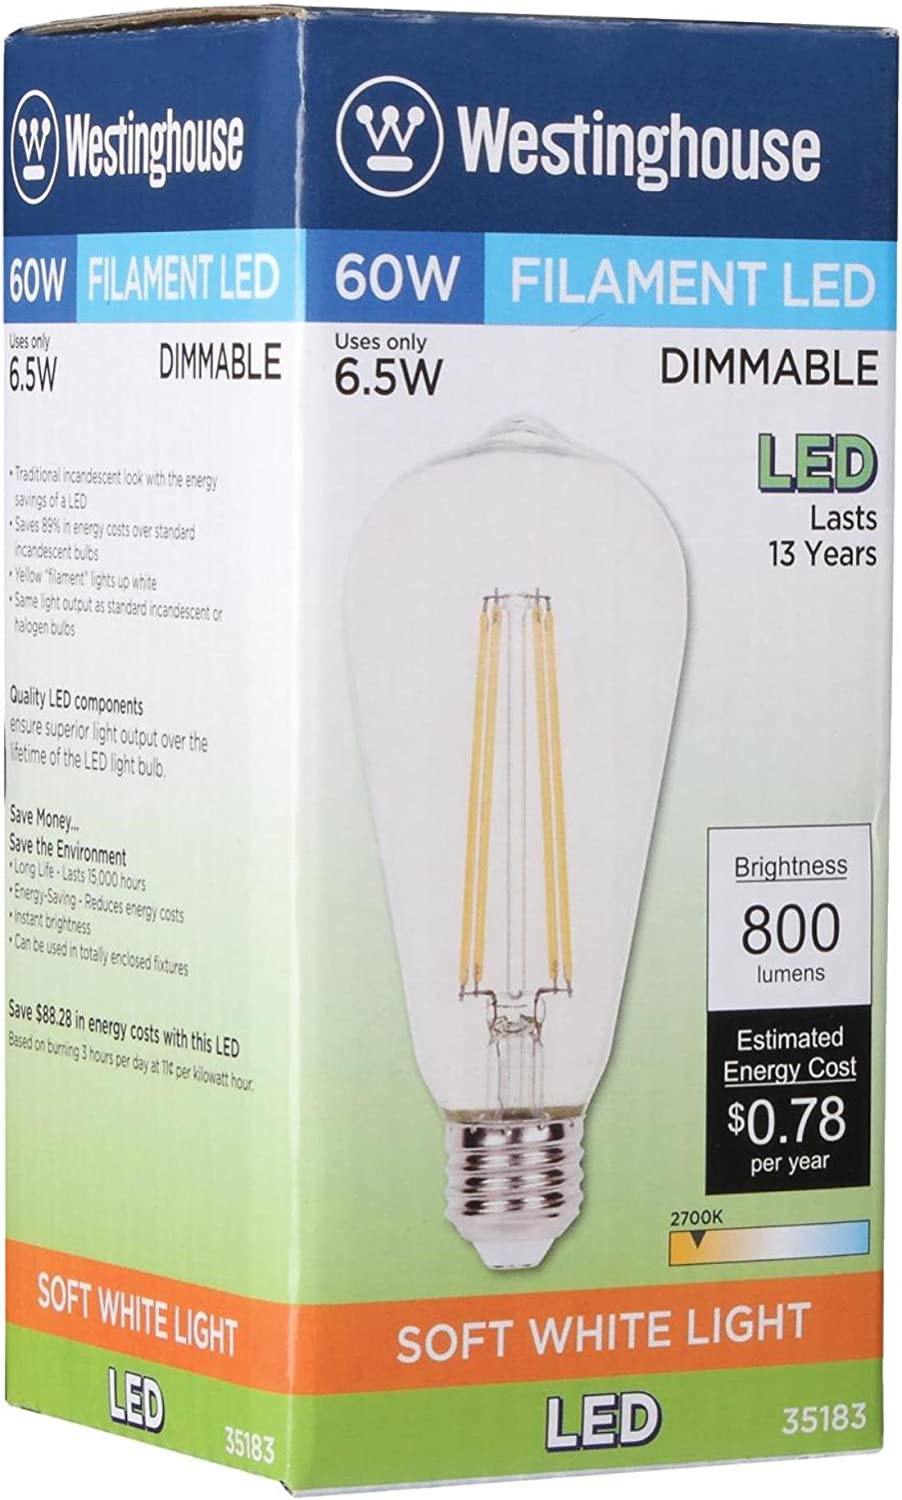 Westinghouse Lighting 3518300 60 Watt Equivalent St20 Dimmable Clear Filament Led Light Bulb With Medium Base Amazon Com